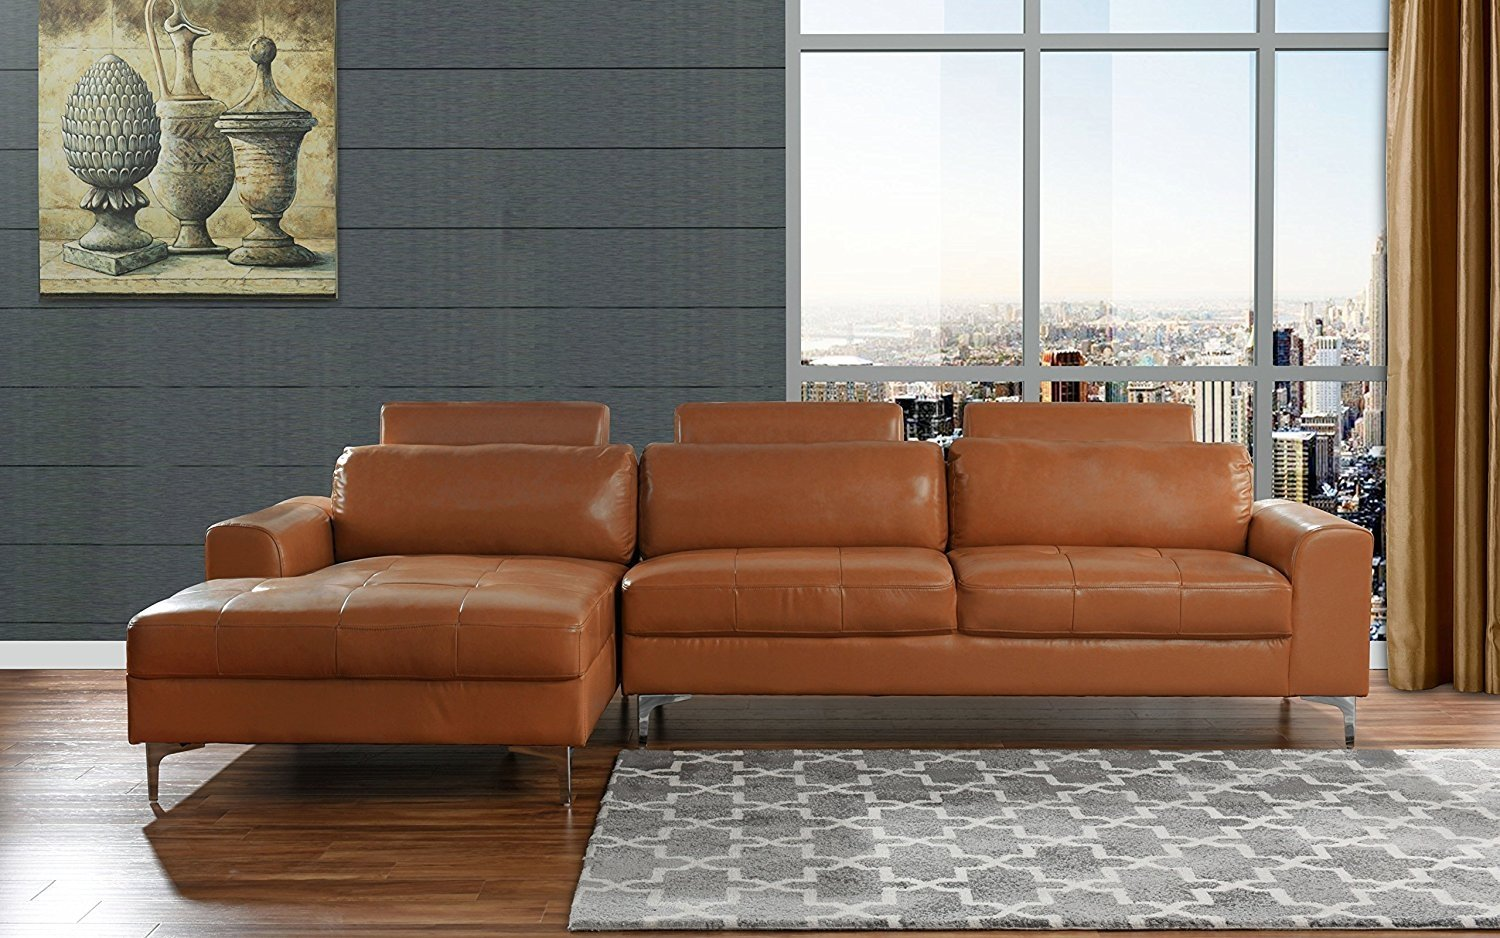 Modern Large Leather Sectional Sofa, L Shape Couch With Extra Wide Chaise  Lounge (Camel)